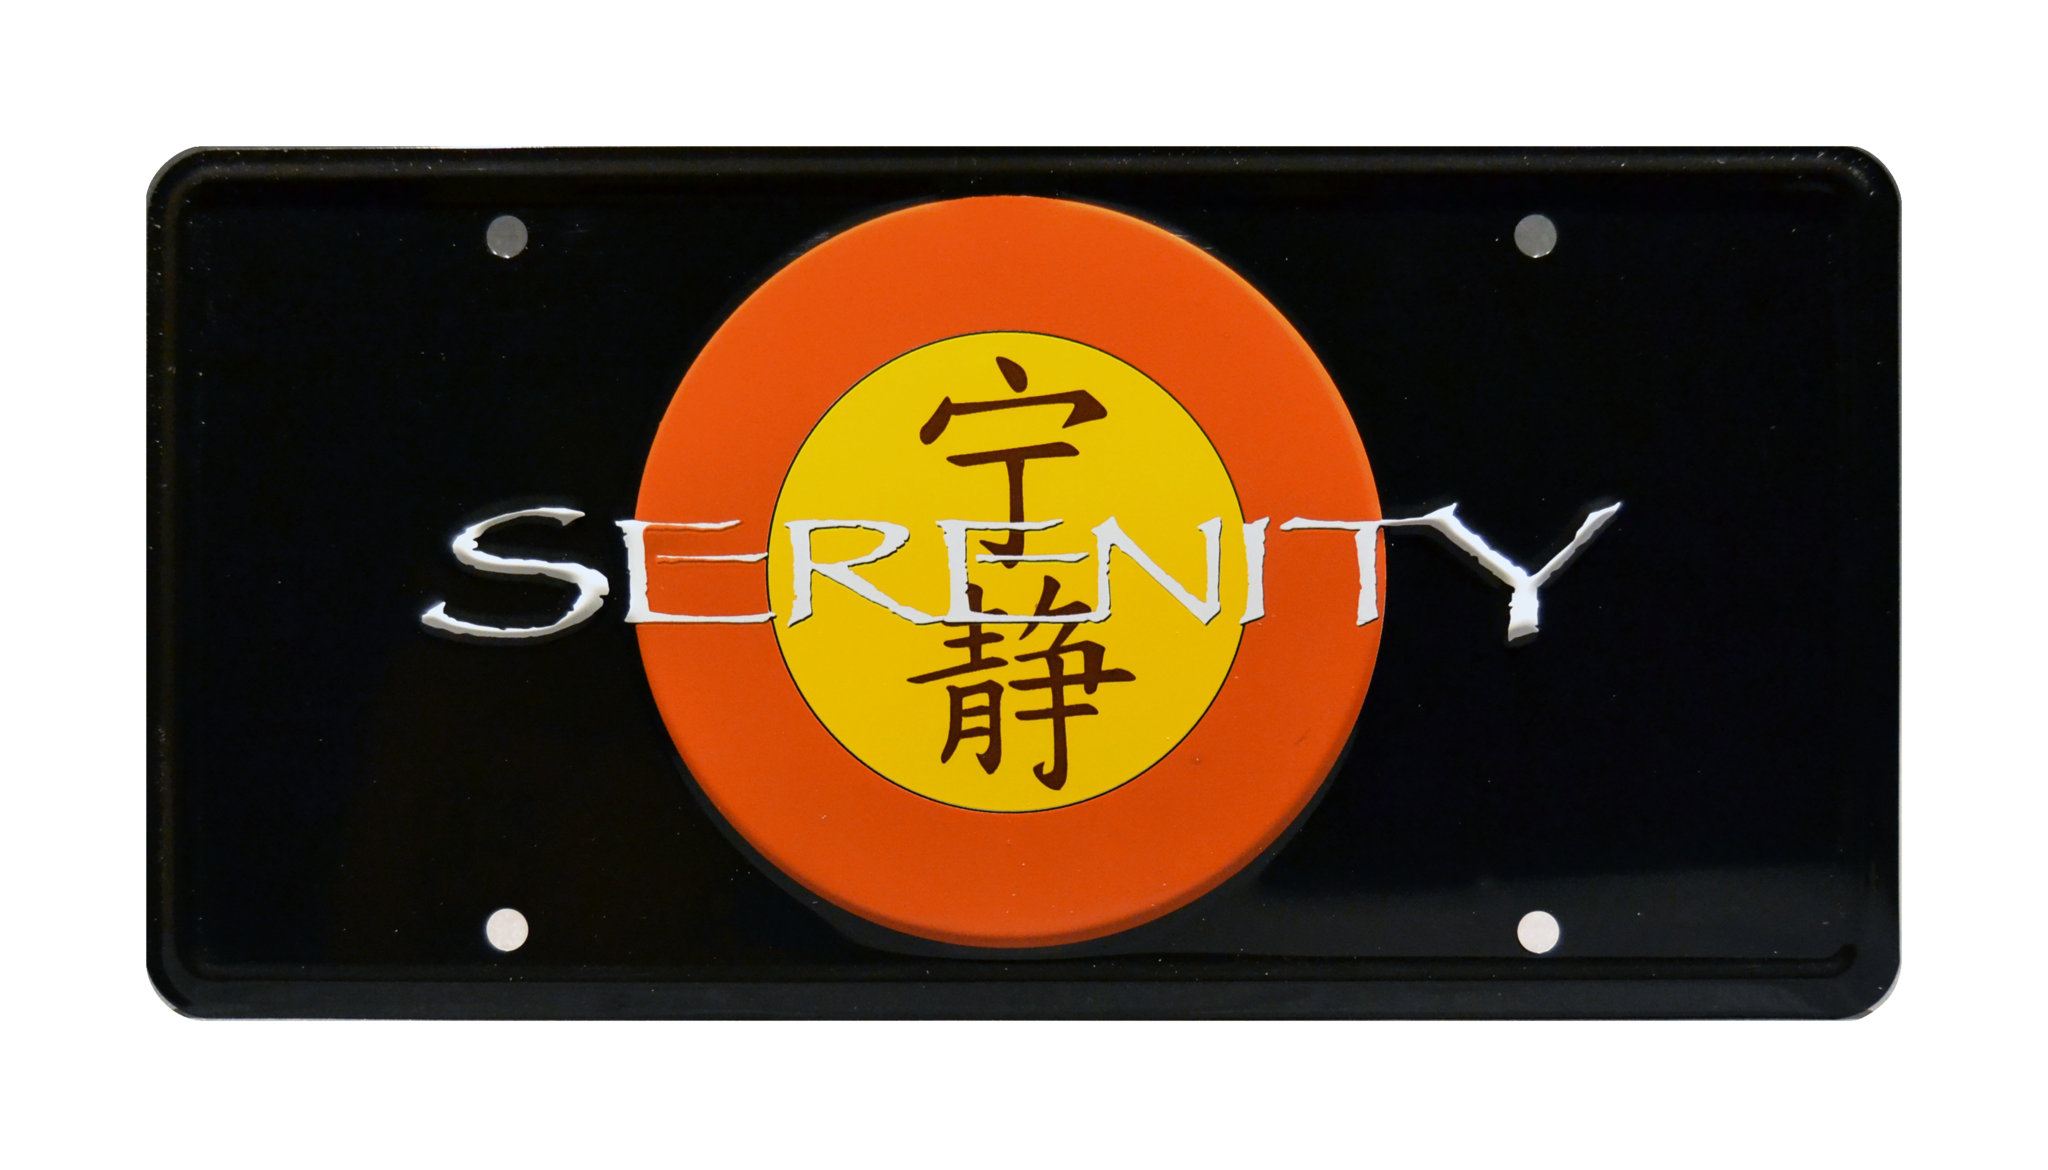 Firefly serenity logo png. Joss whedon s sci